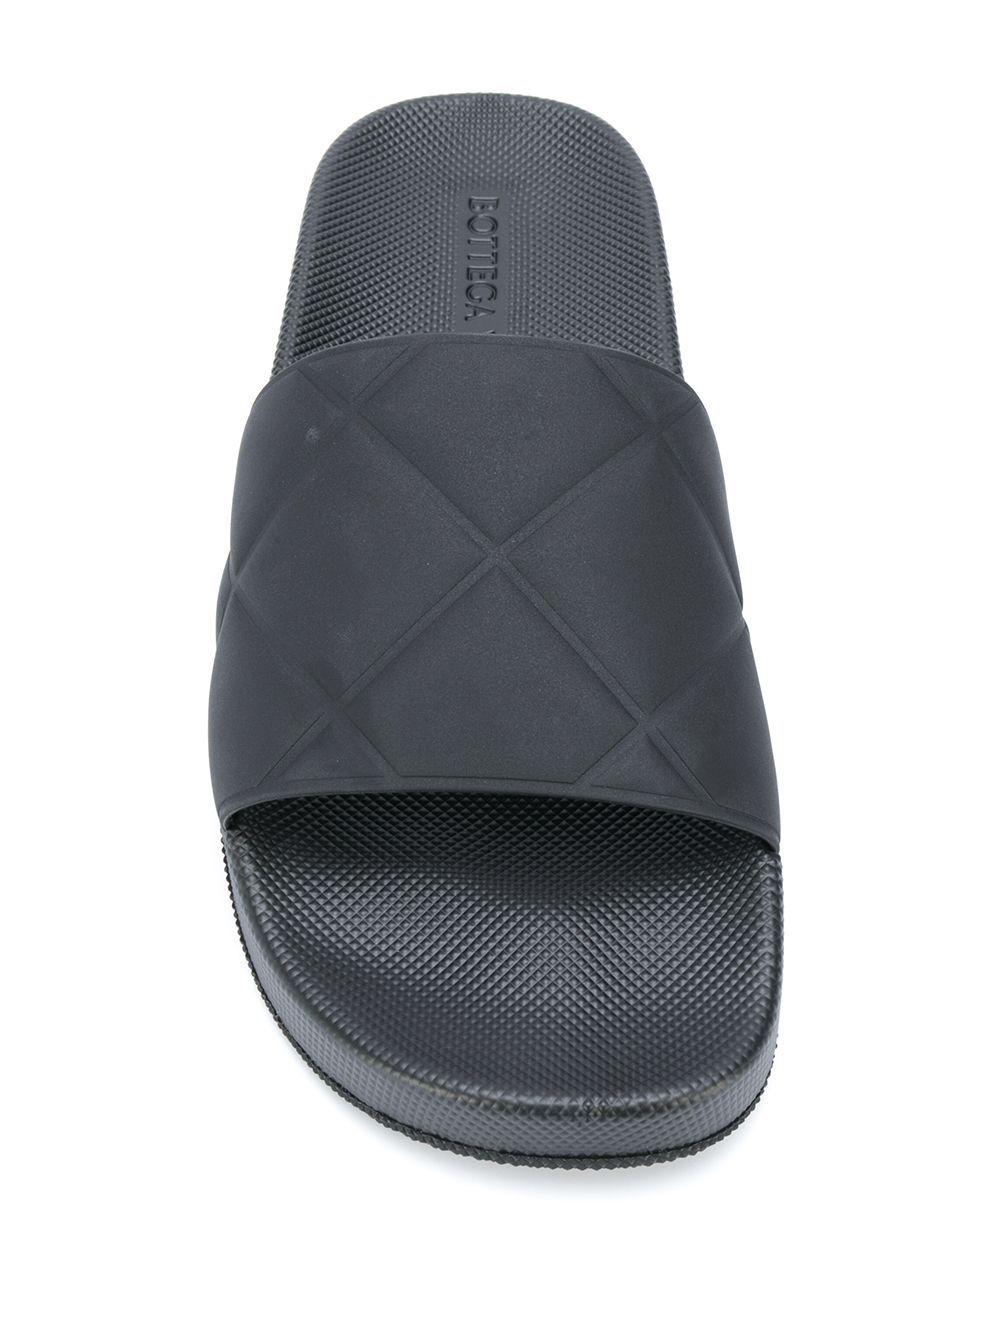 Padded Pool Sliders